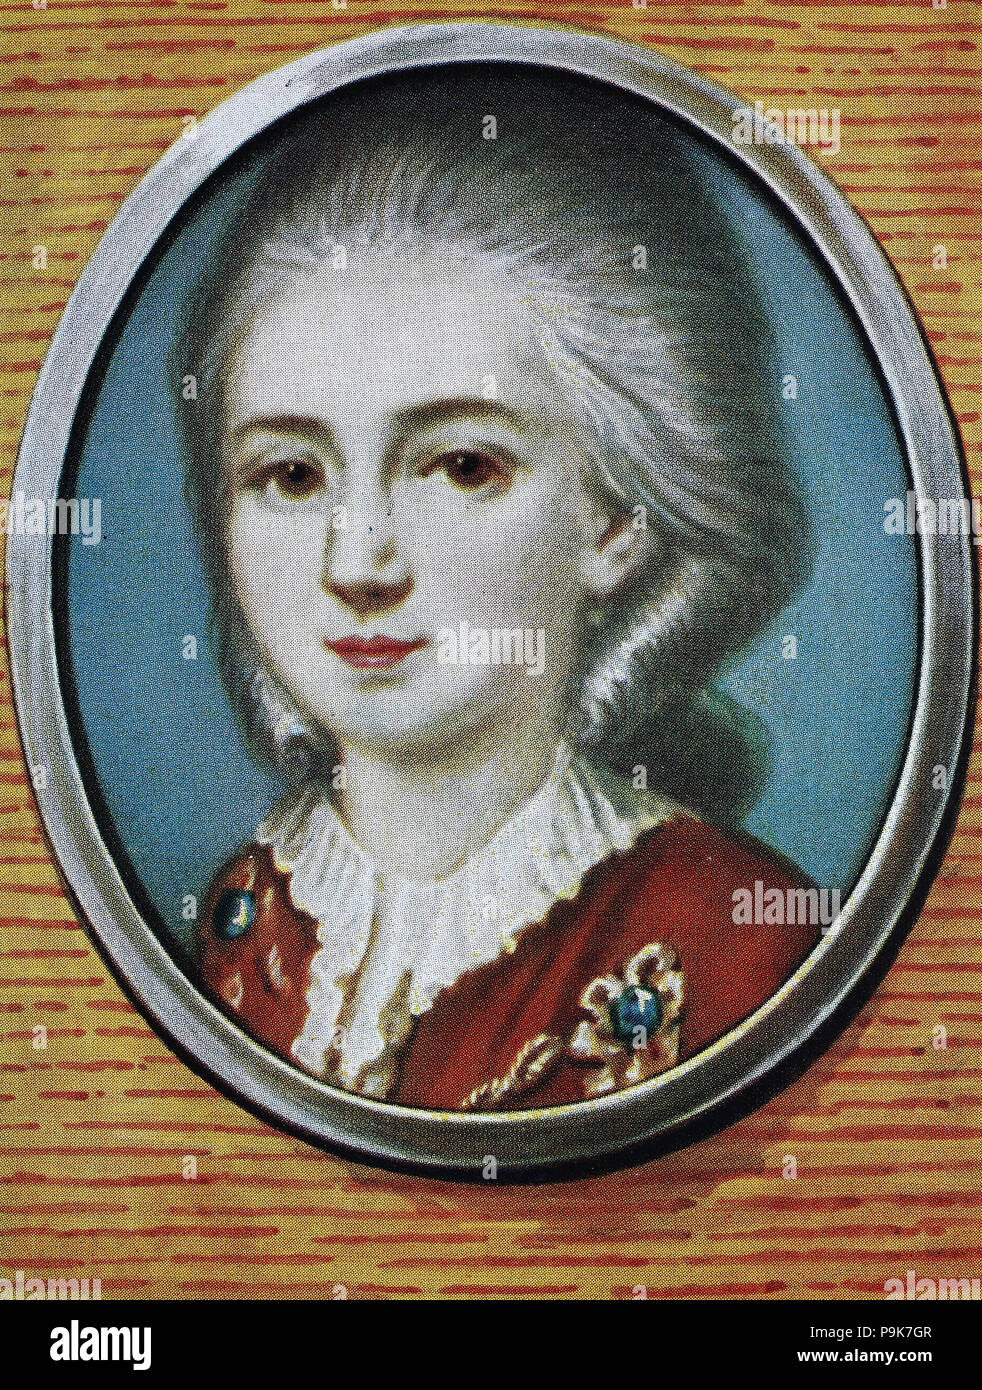 Wolfgang Amadeus Mozart, 27 January 1756 – 5 December 1791, baptised as Johannes Chrysostomus Wolfgangus Theophilus Mozart, was a prolific and influential composer of the classical era. , digital improved reproduction of an original print from the year 1900 - Stock Image